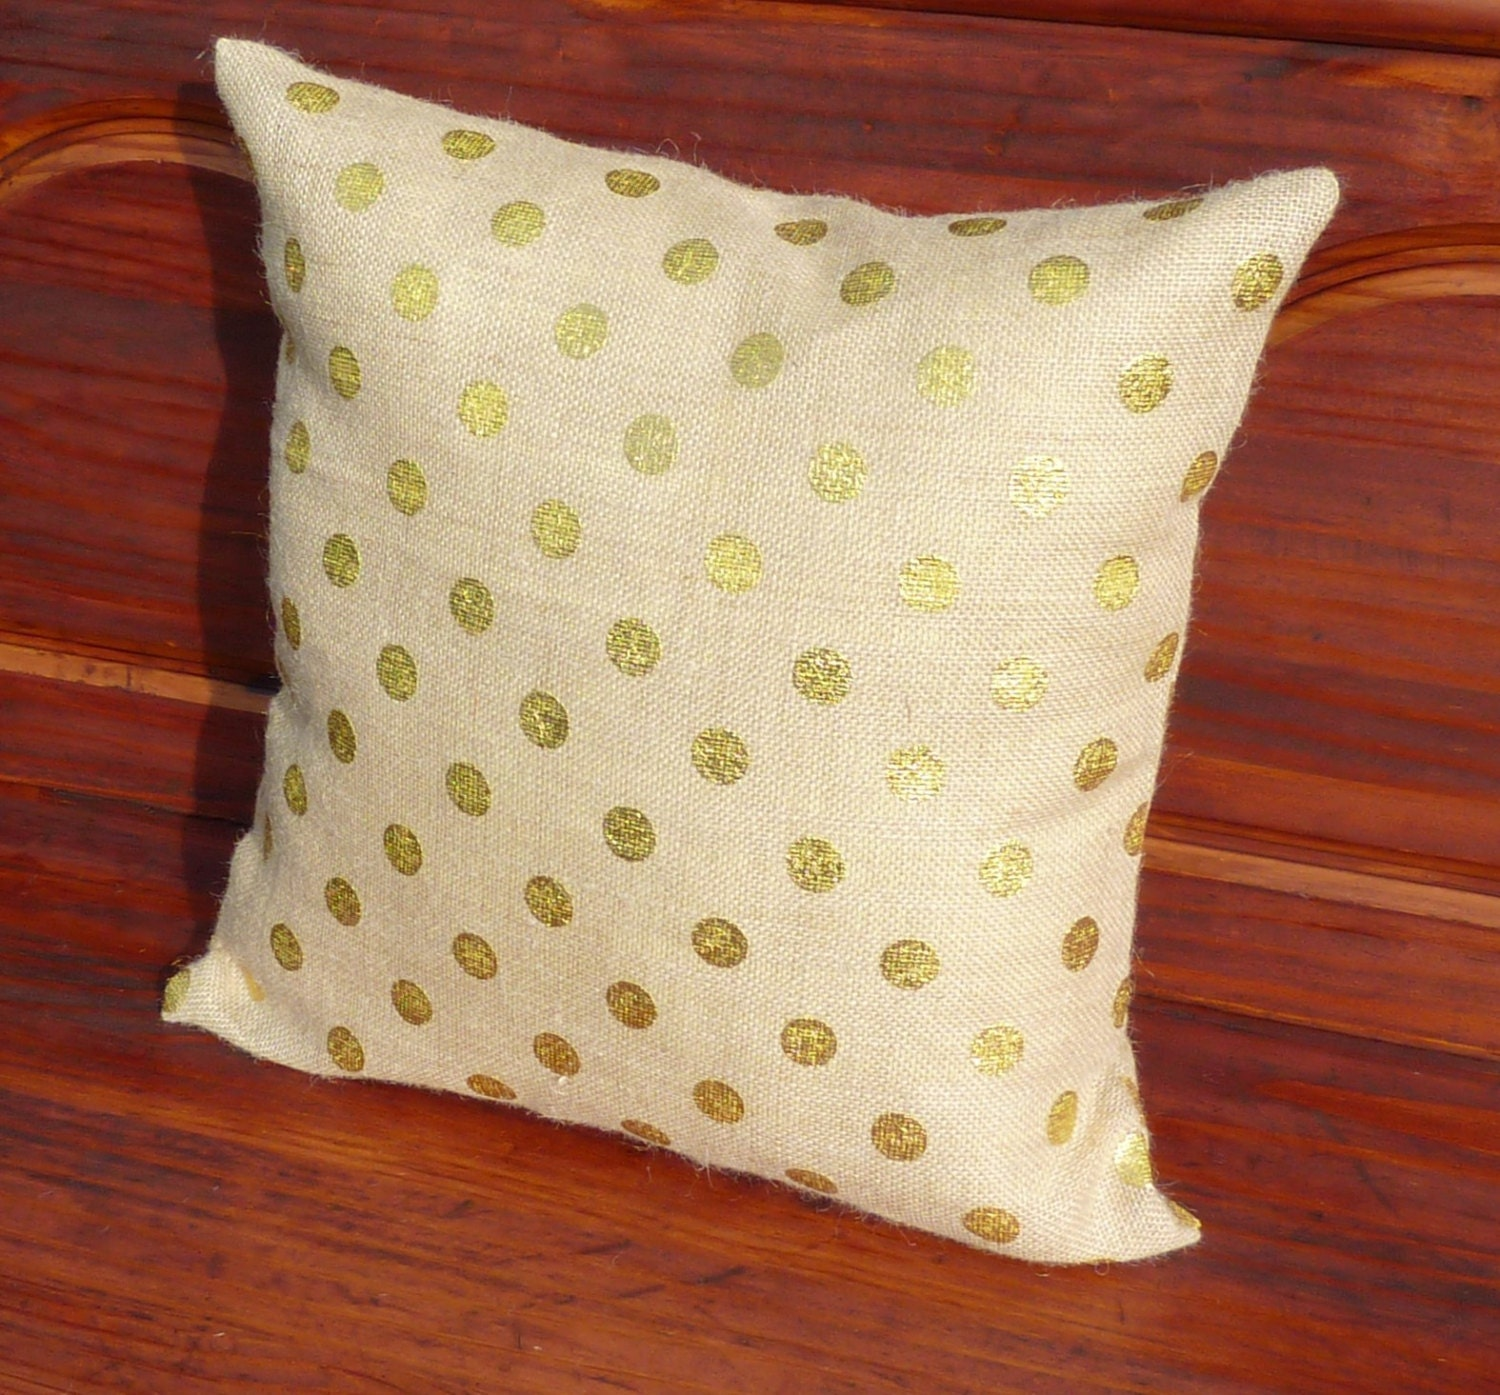 How To Make Zippered Throw Pillow Covers : Gold Polka Dot Burlap Pillow Covers Zippered Pillow Decorative